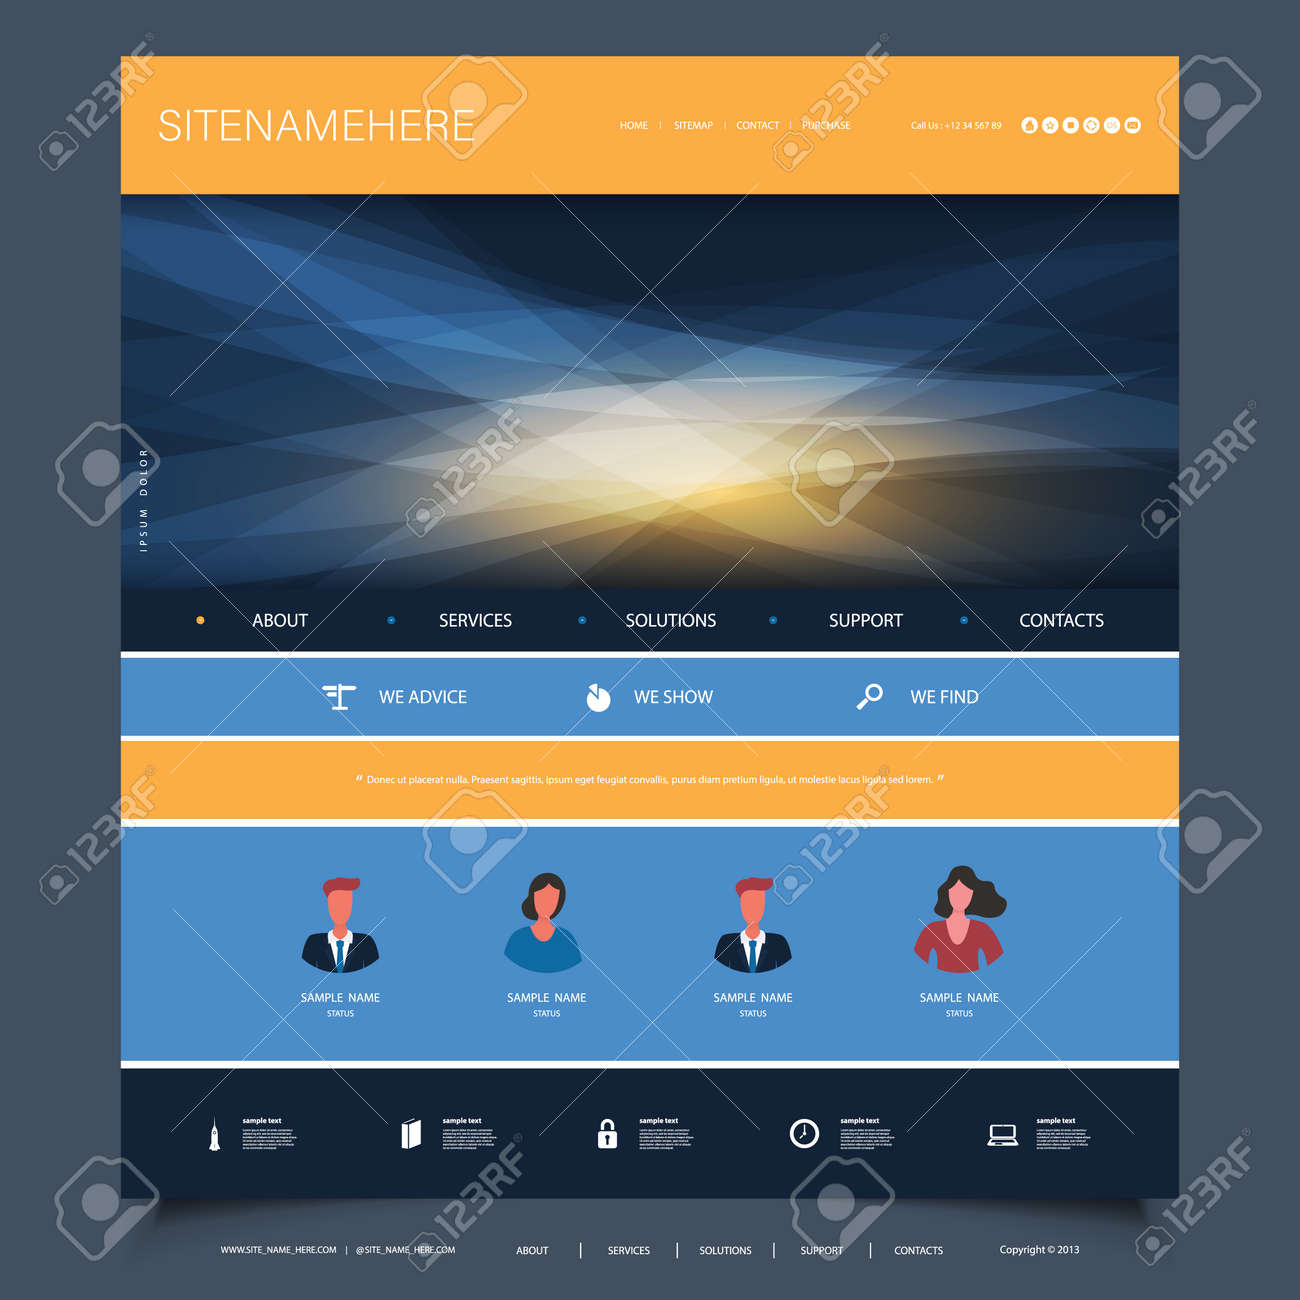 Website Design Template for Your Business with Orange and Blue Wavy Gradient Texture in the Header - 150500908